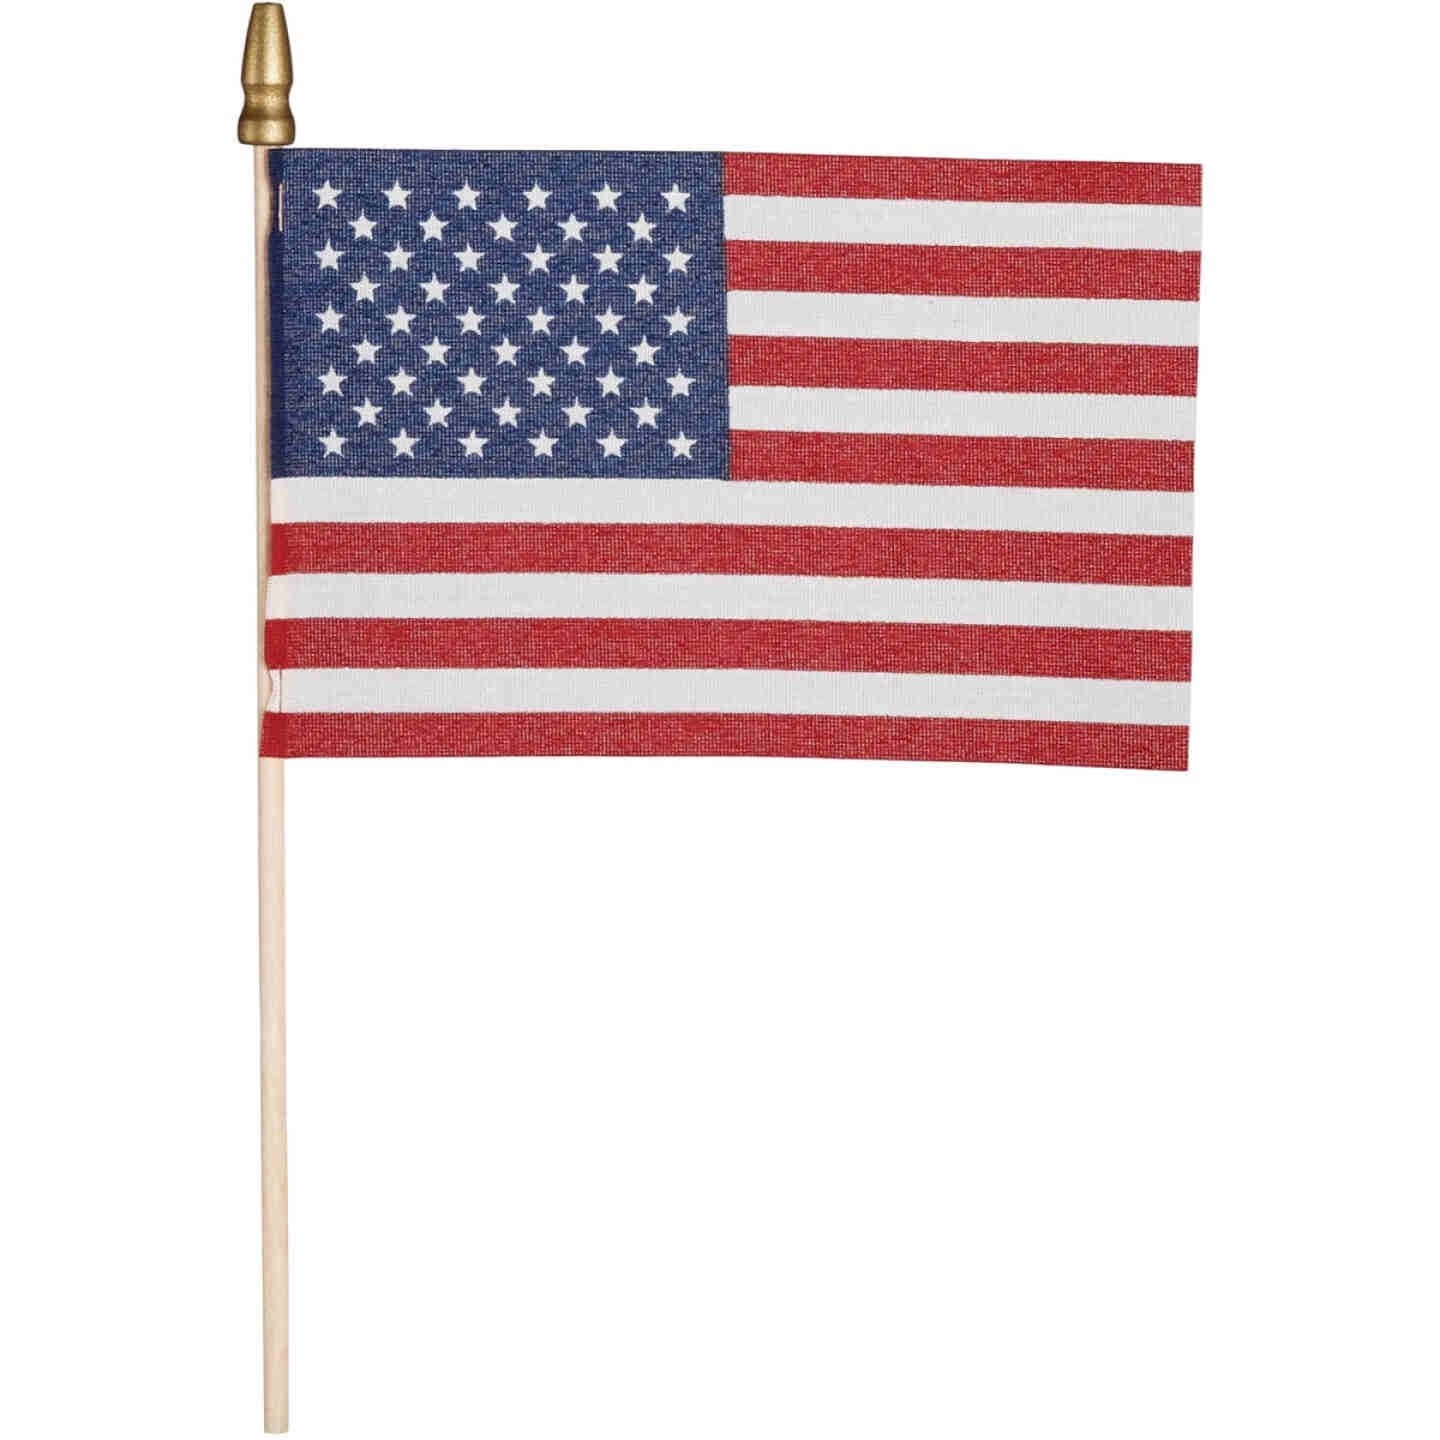 Valley Forge 4 In. x 6 In. Polycotton Stick American Flag Image 2